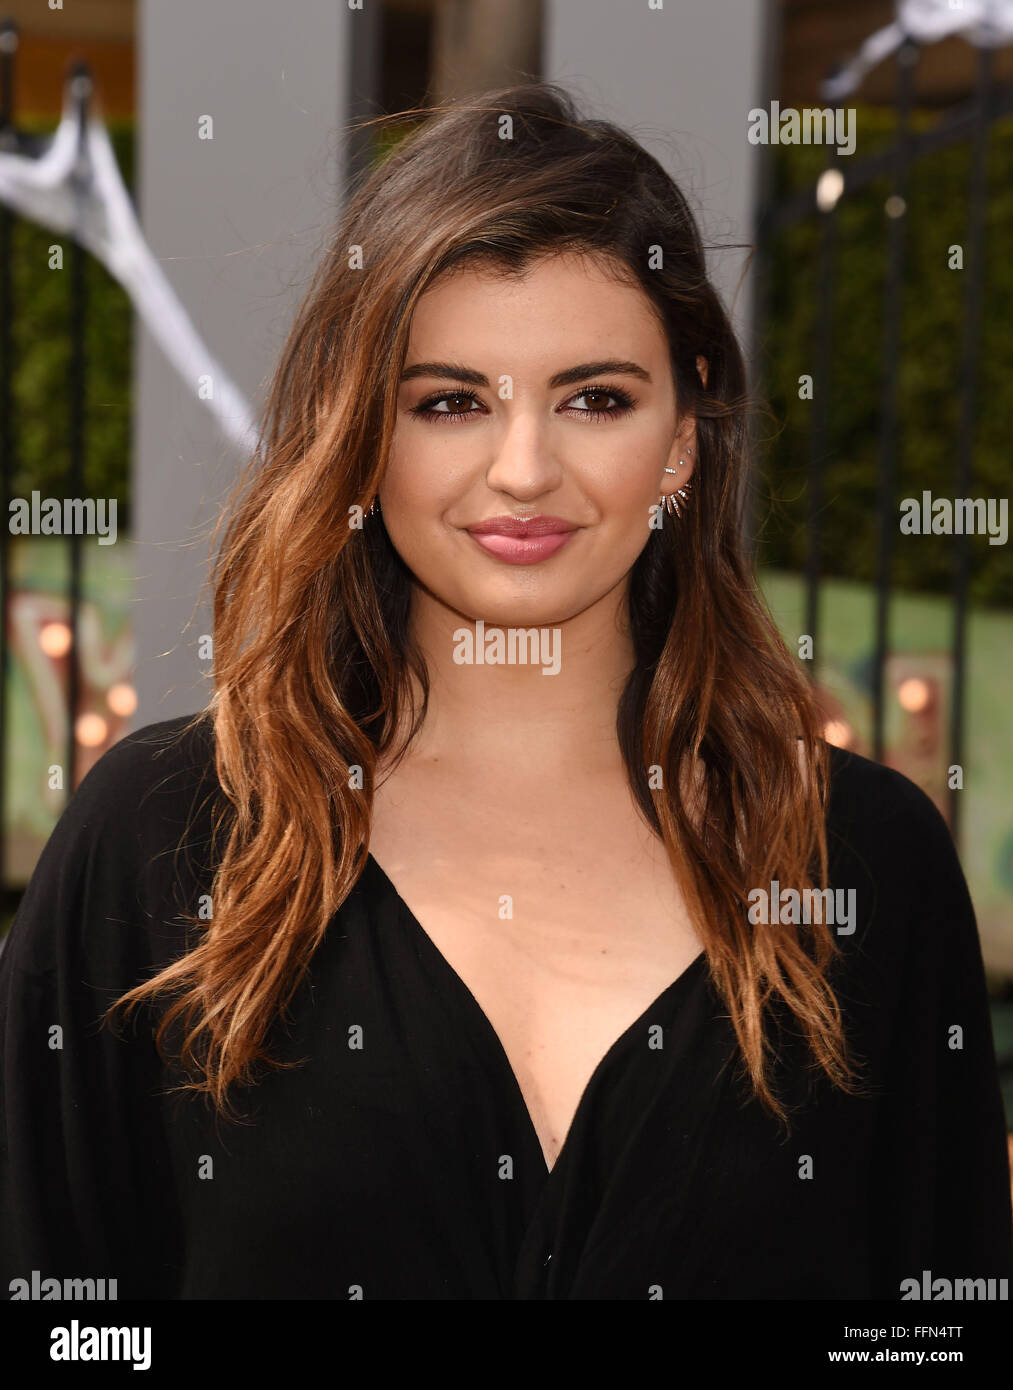 Actress Rebecca Black attends the Premiere Of Sony Entertainment's 'Goosebumps' at the Regency Village - Stock Image